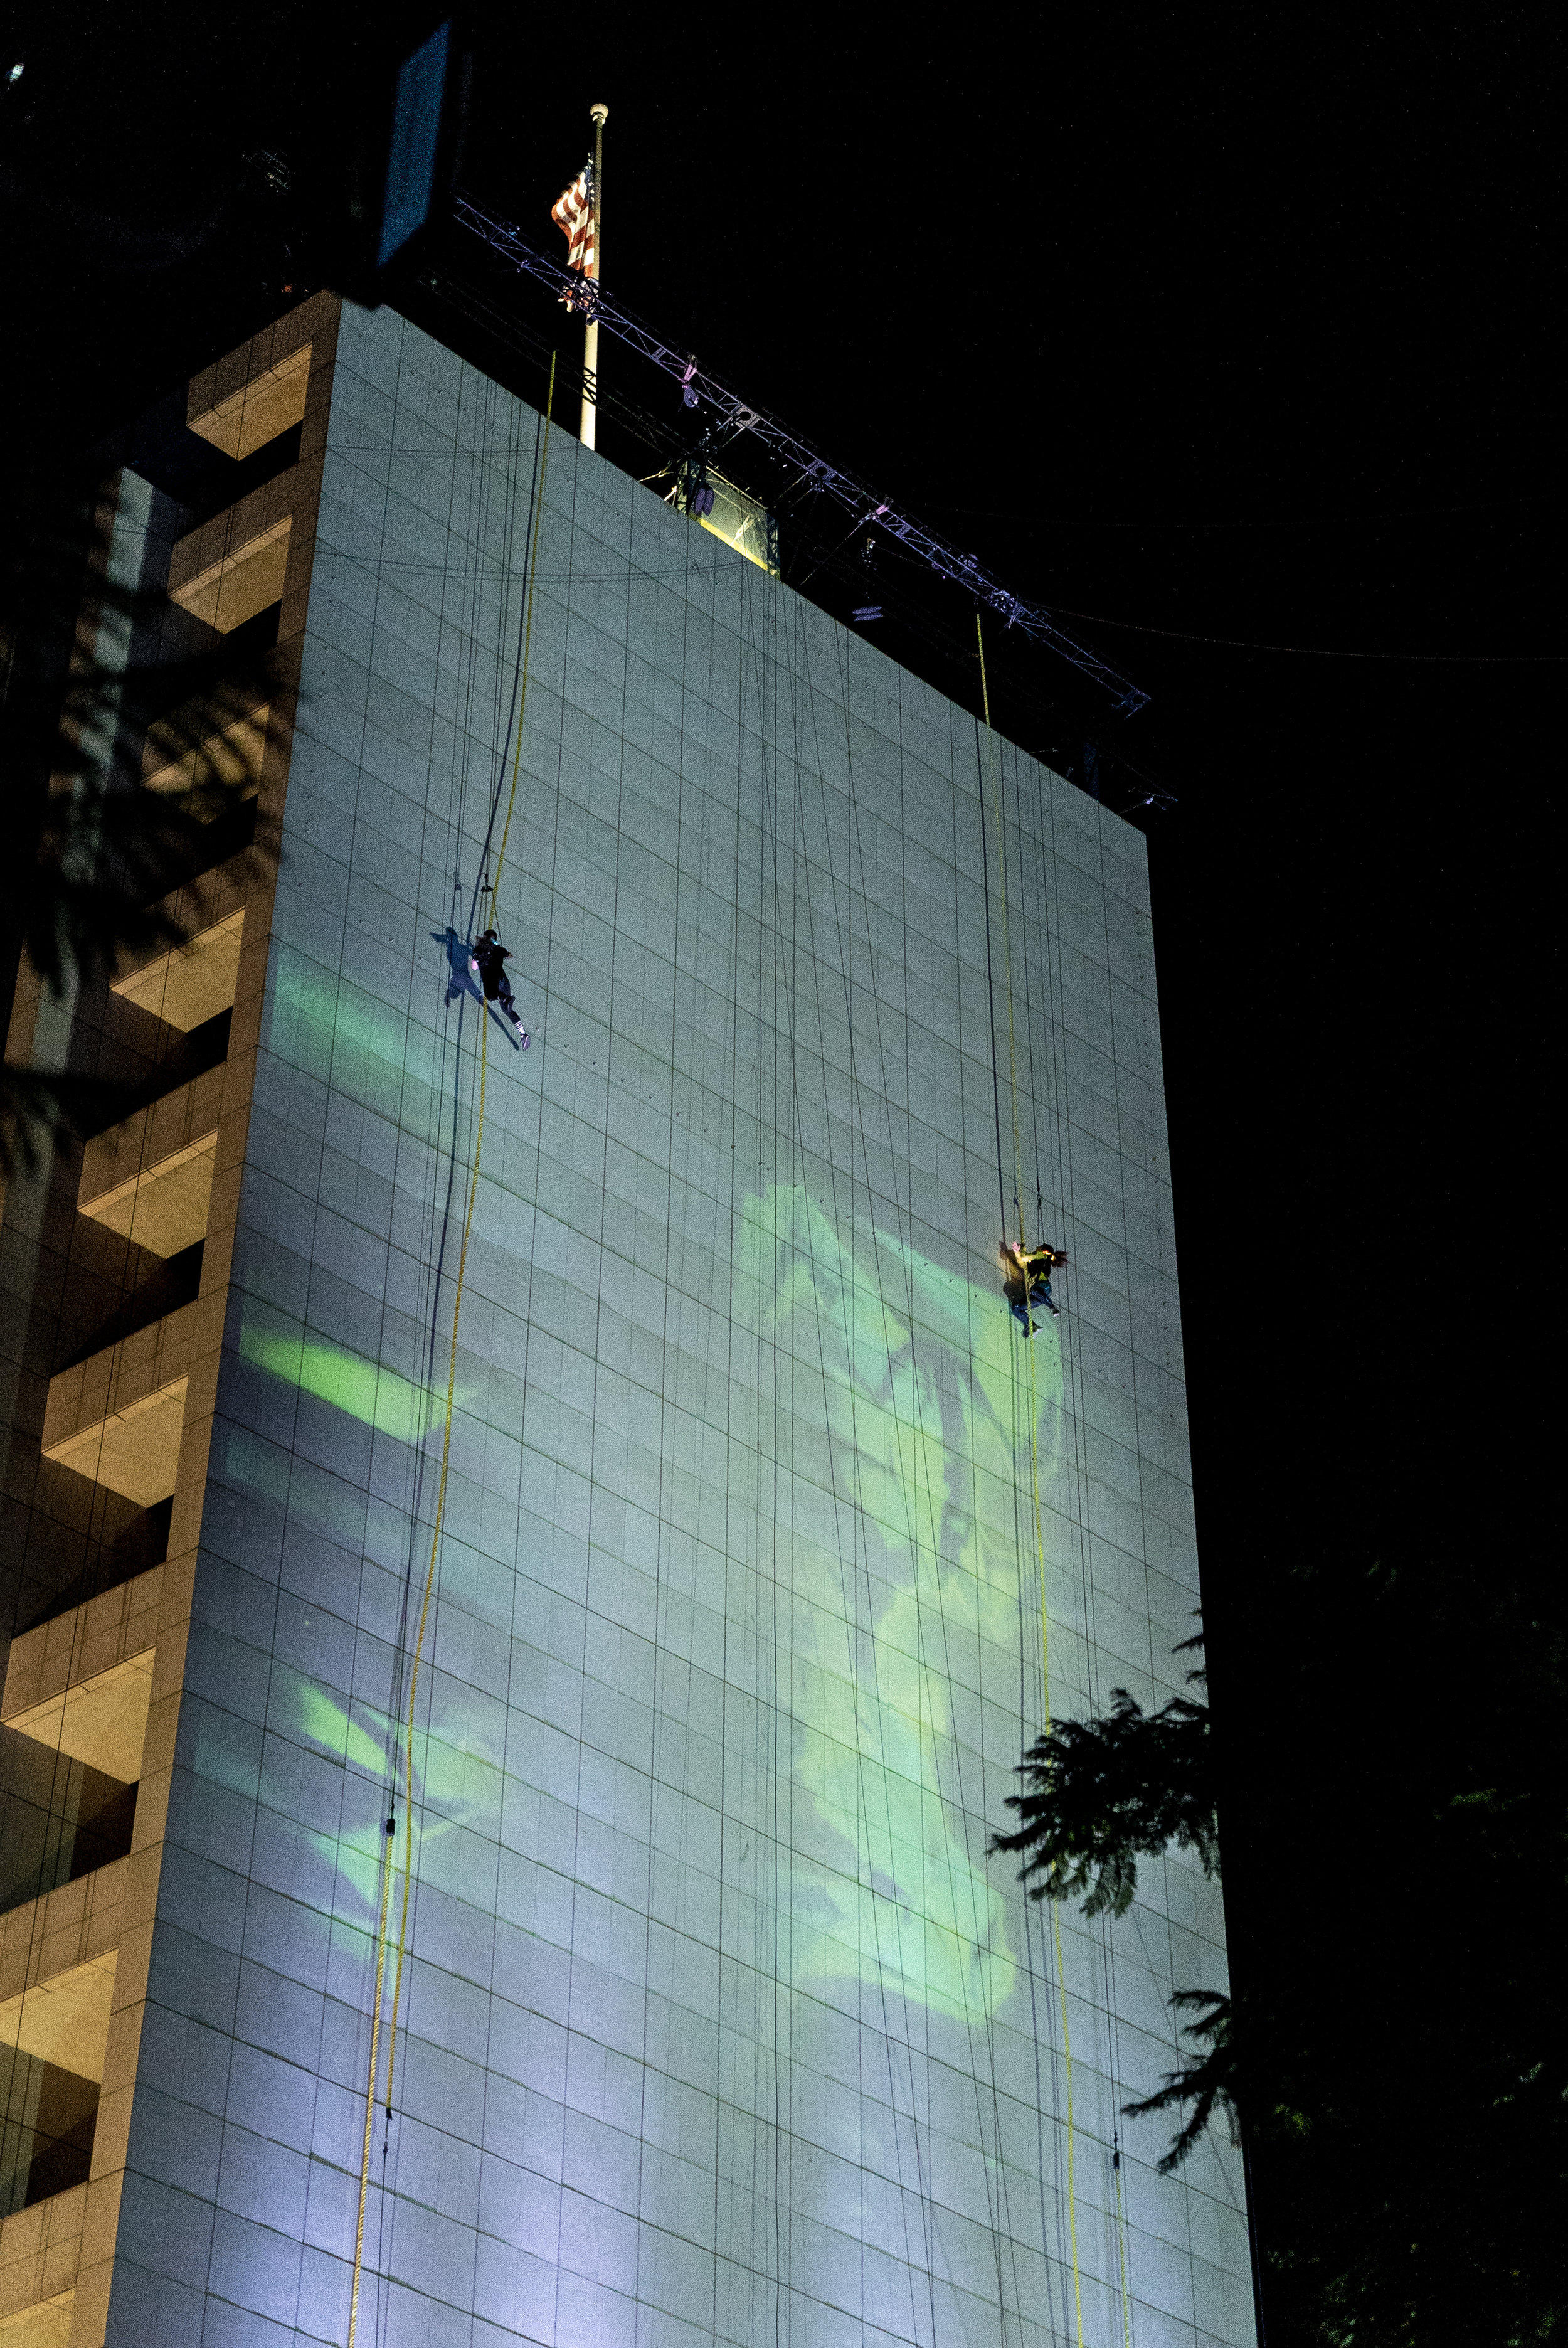 million-dollar-mile-mdm-wall-rappel.jpg